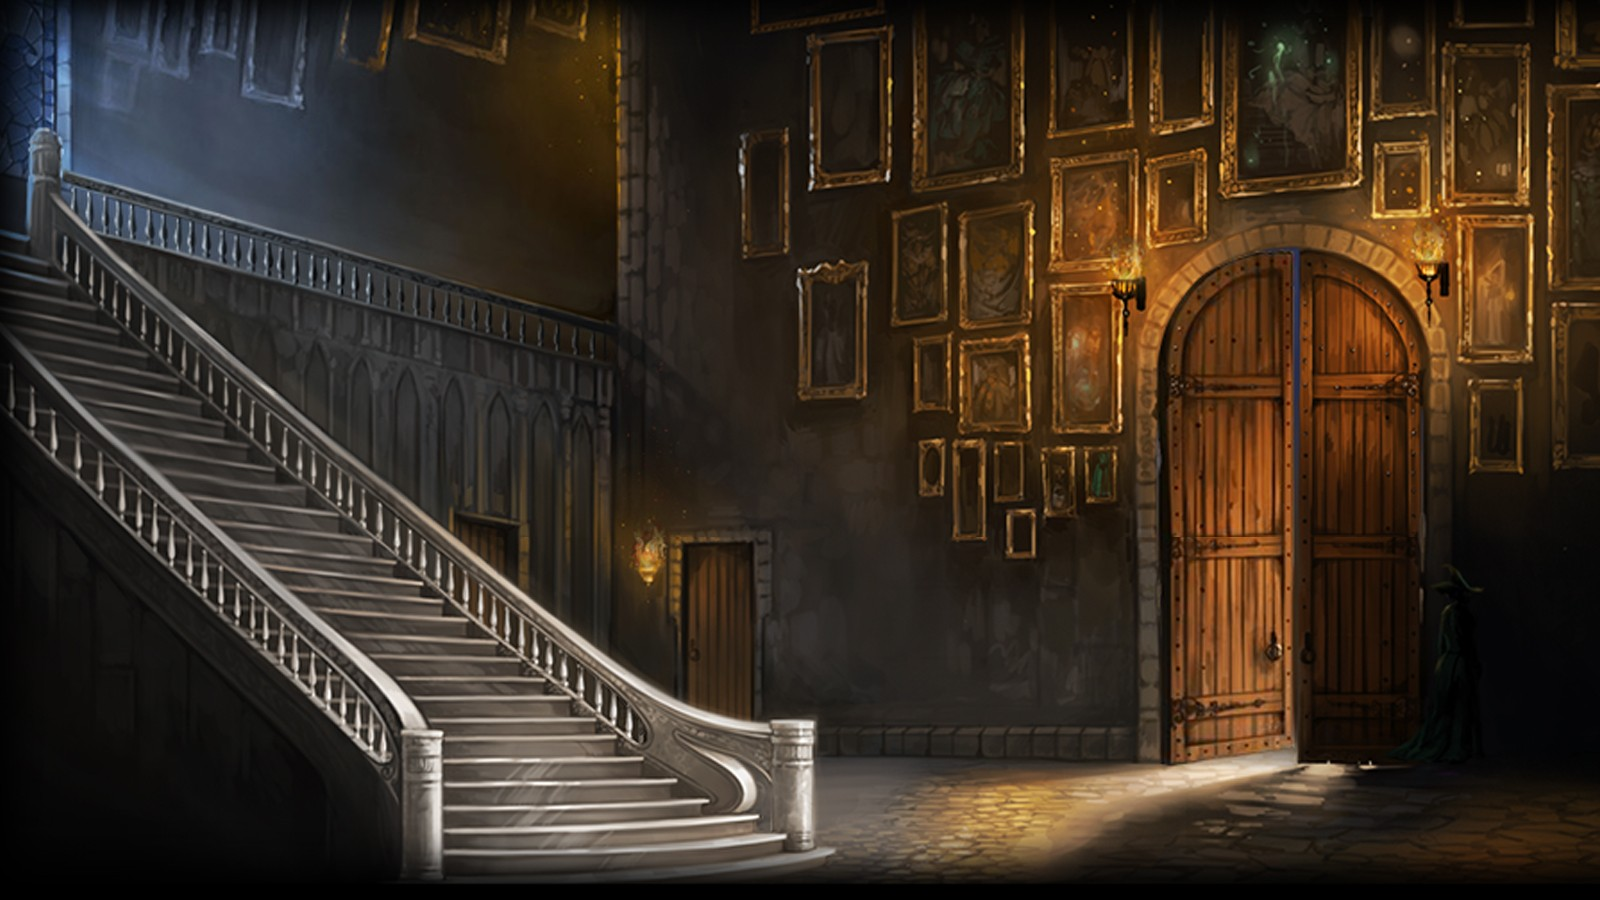 Simple Wallpaper Harry Potter Pottermore - pottermore__great_hall_staircase_by_xxtayce-d6wp8yl  Snapshot_375438.jpg